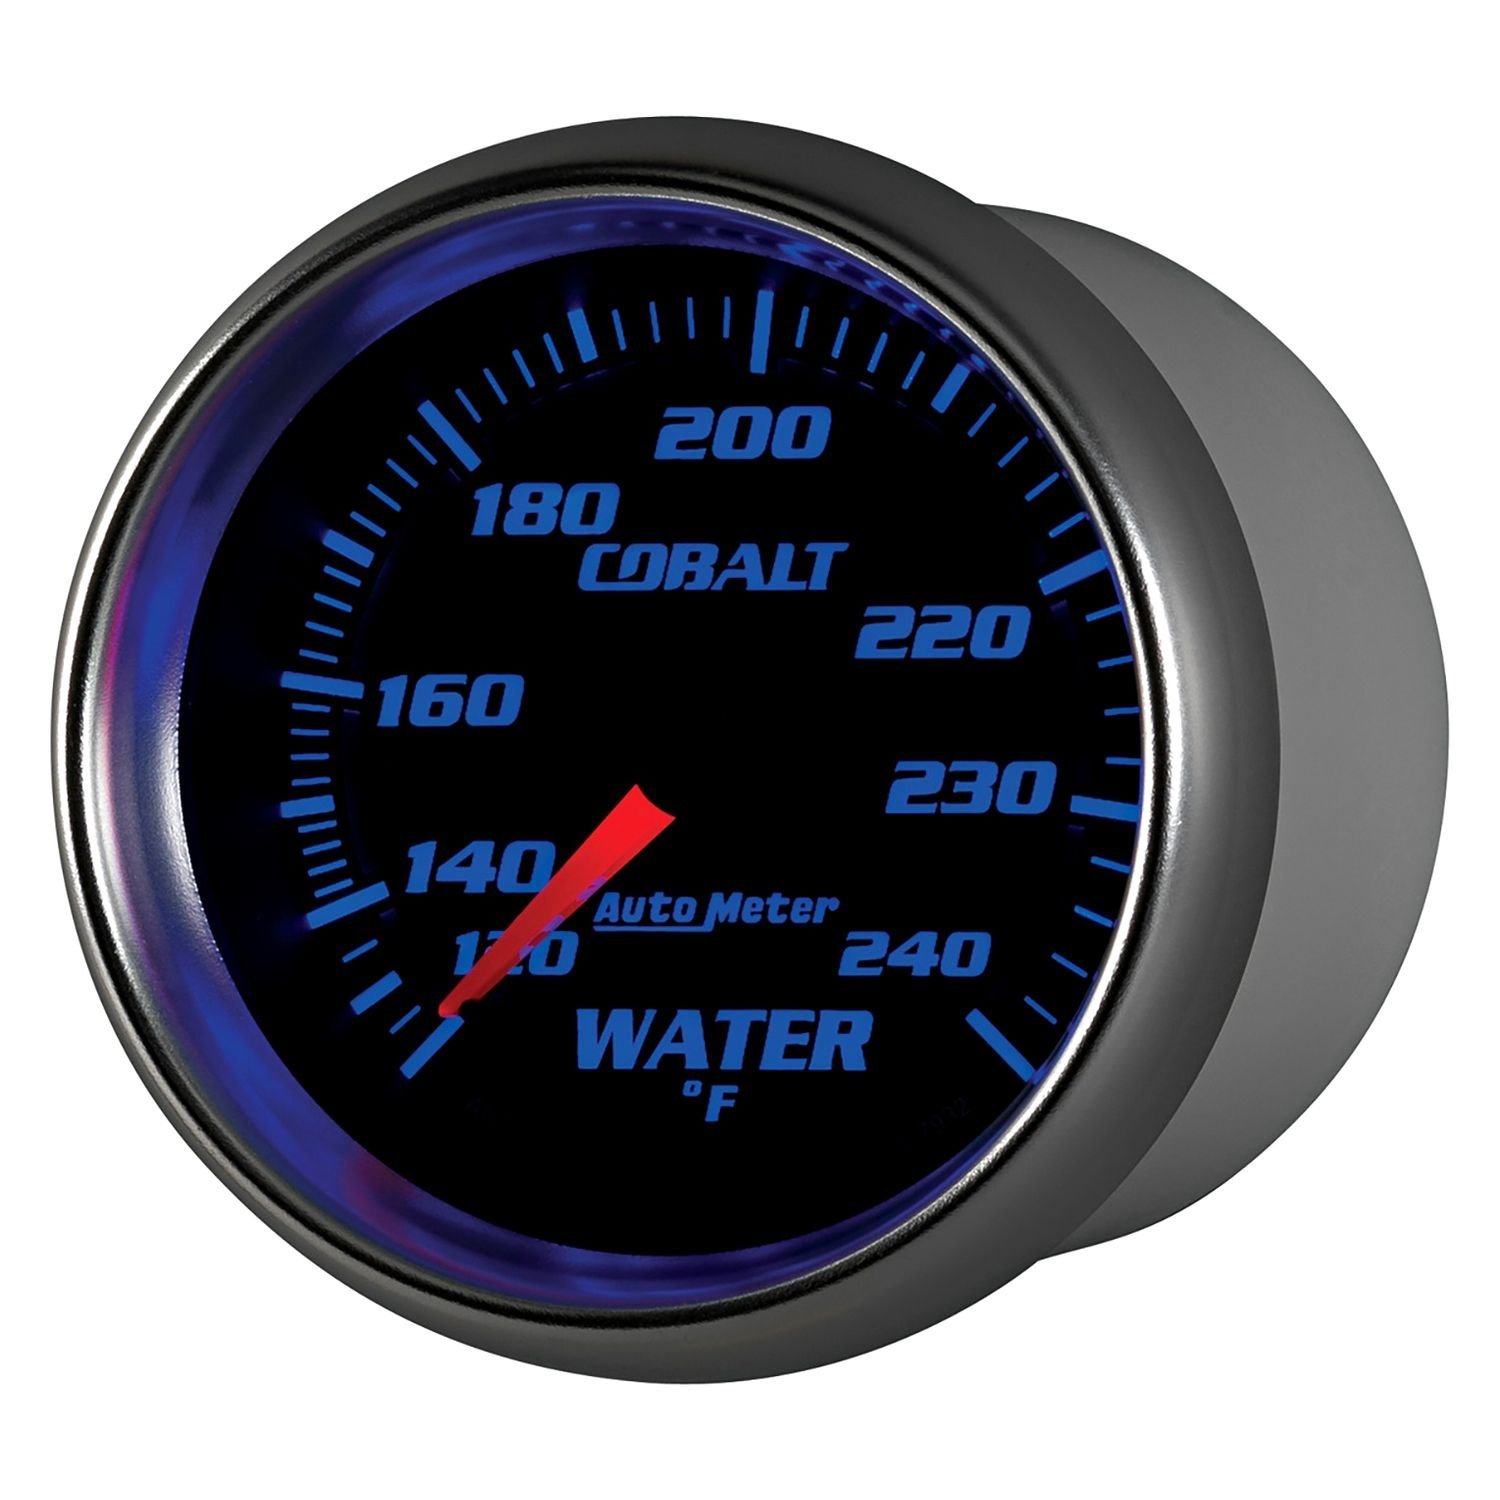 Auto Meter 7932 Cobalt Water Temperature In Dash Gauge